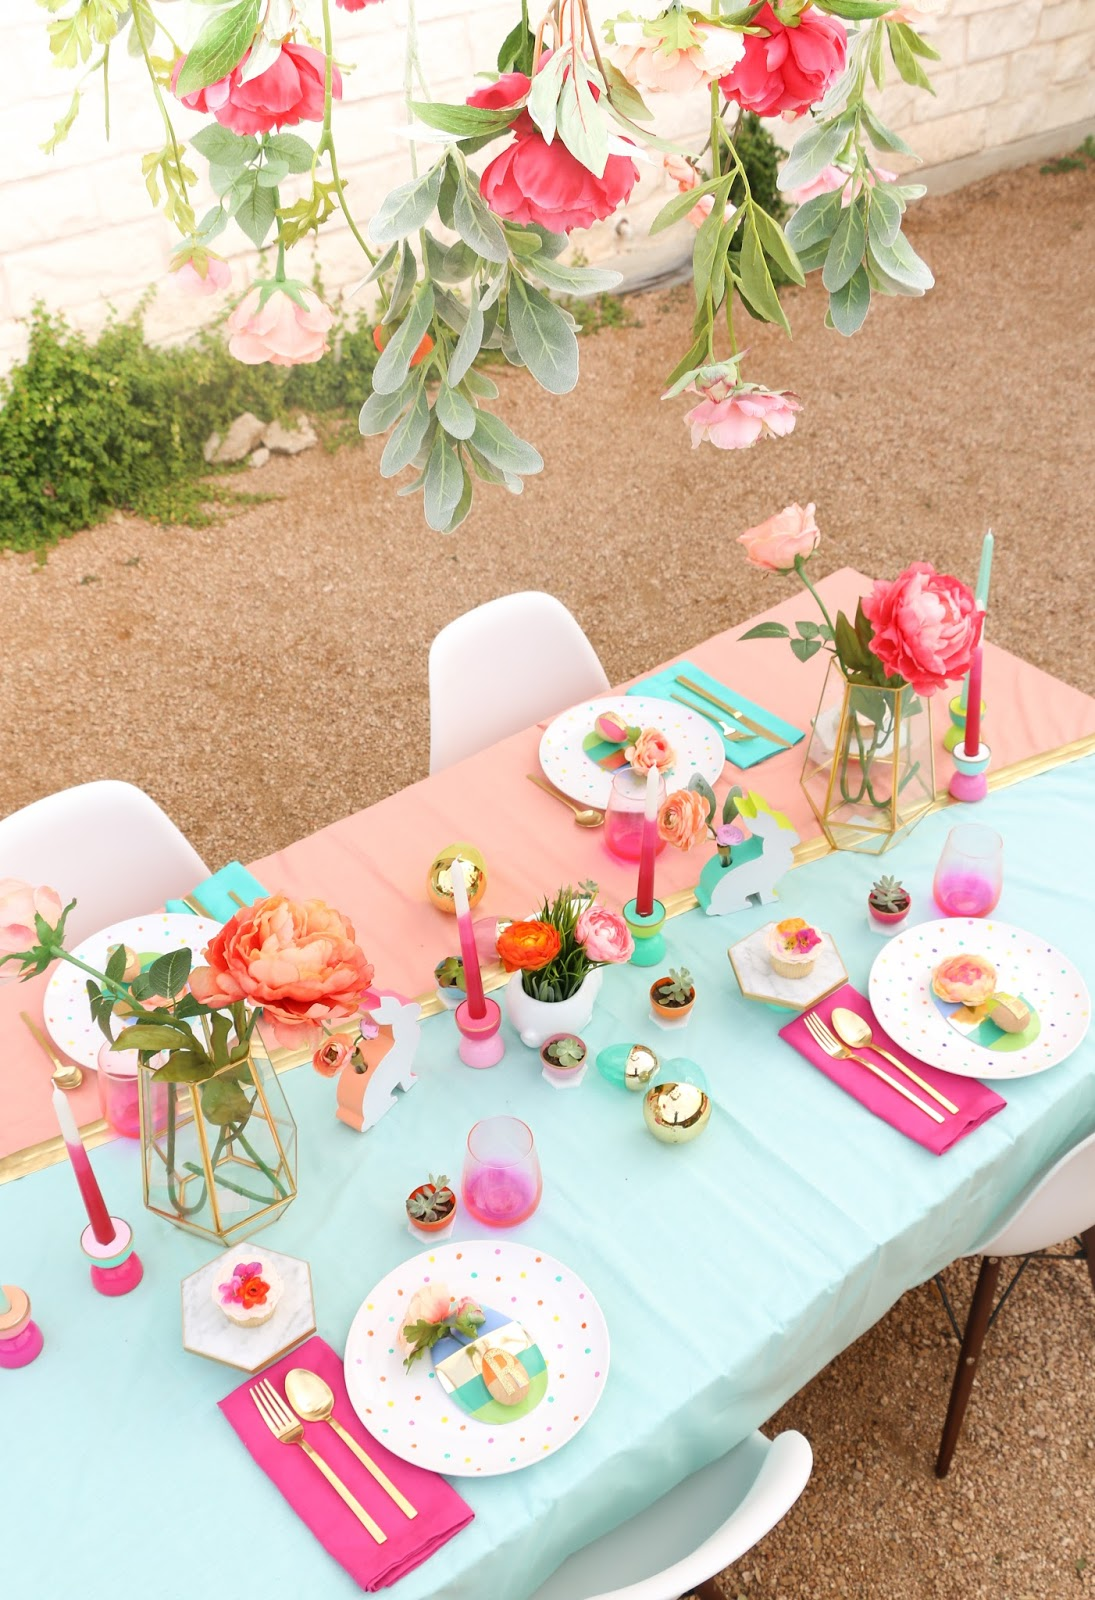 Delicieux Style It U2013 A Spring Table Setting